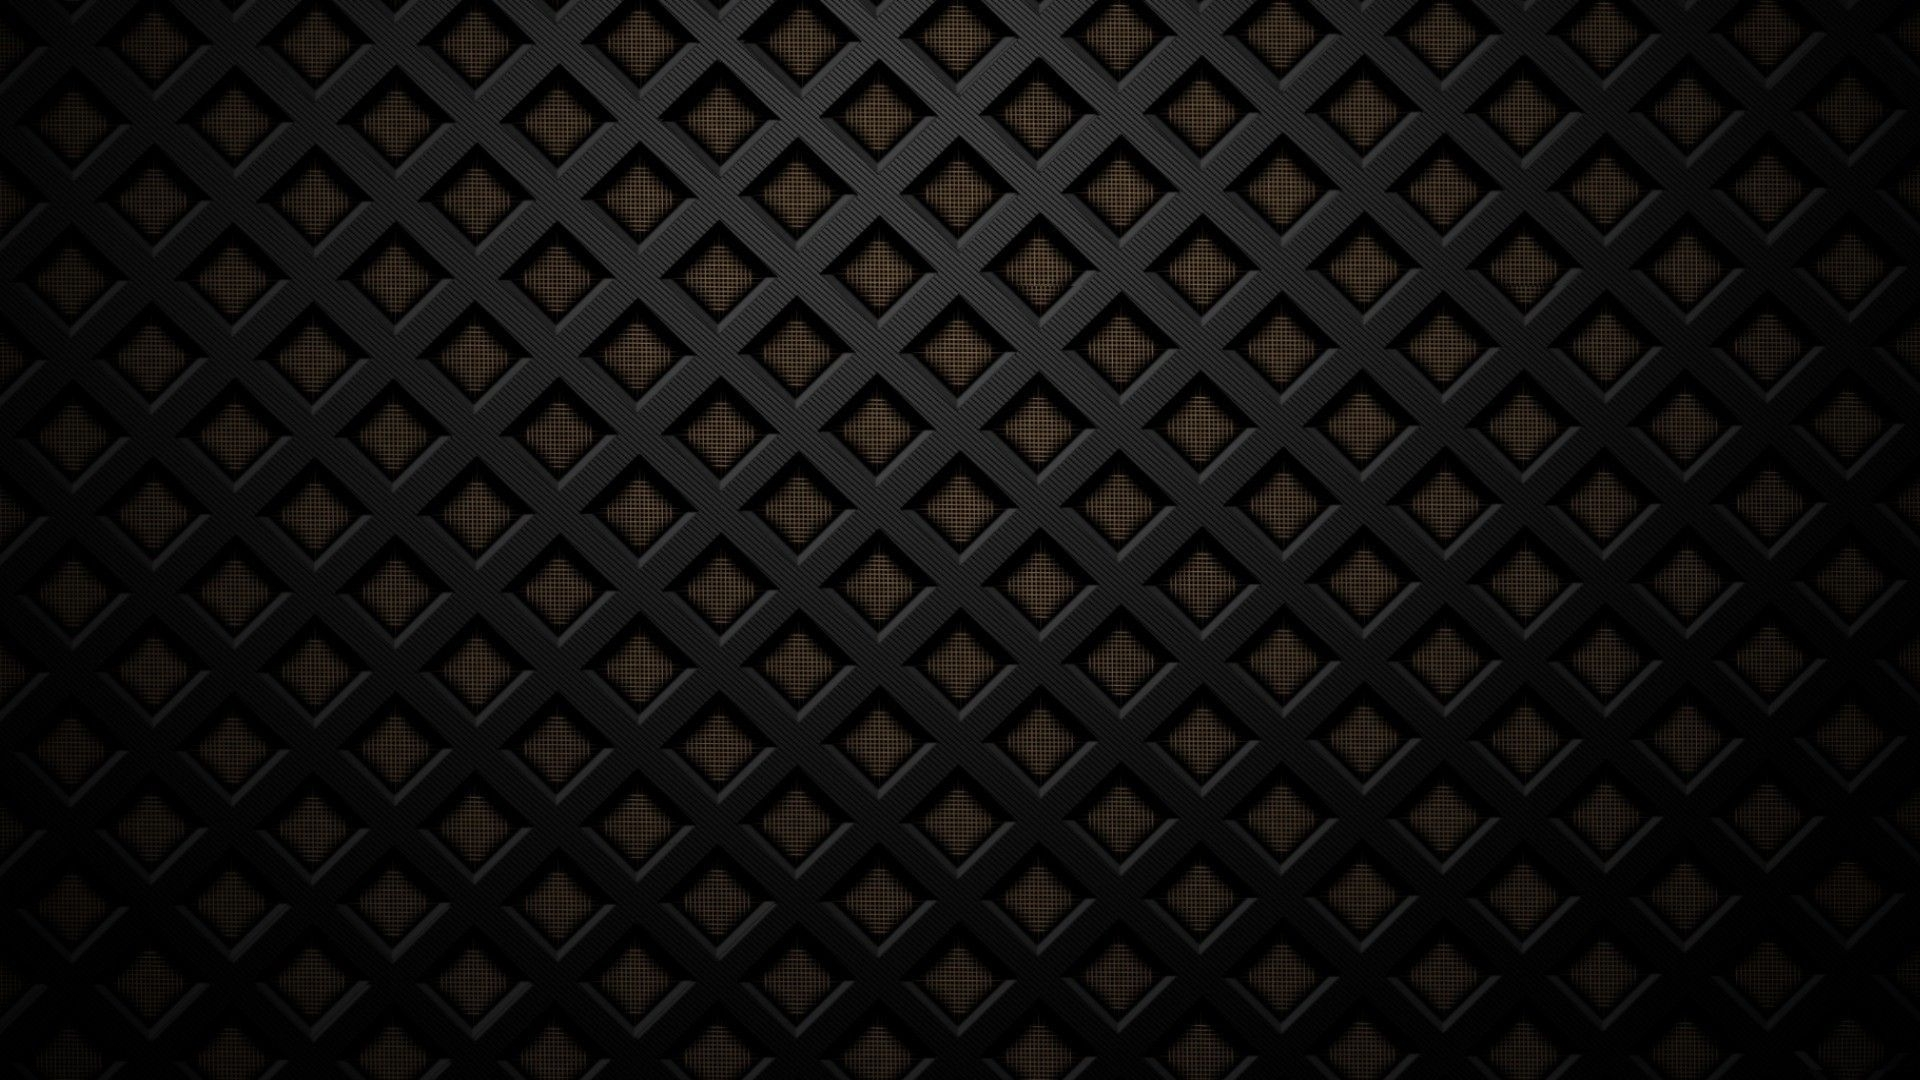 custom hd 48 black abstract wallpapers collection